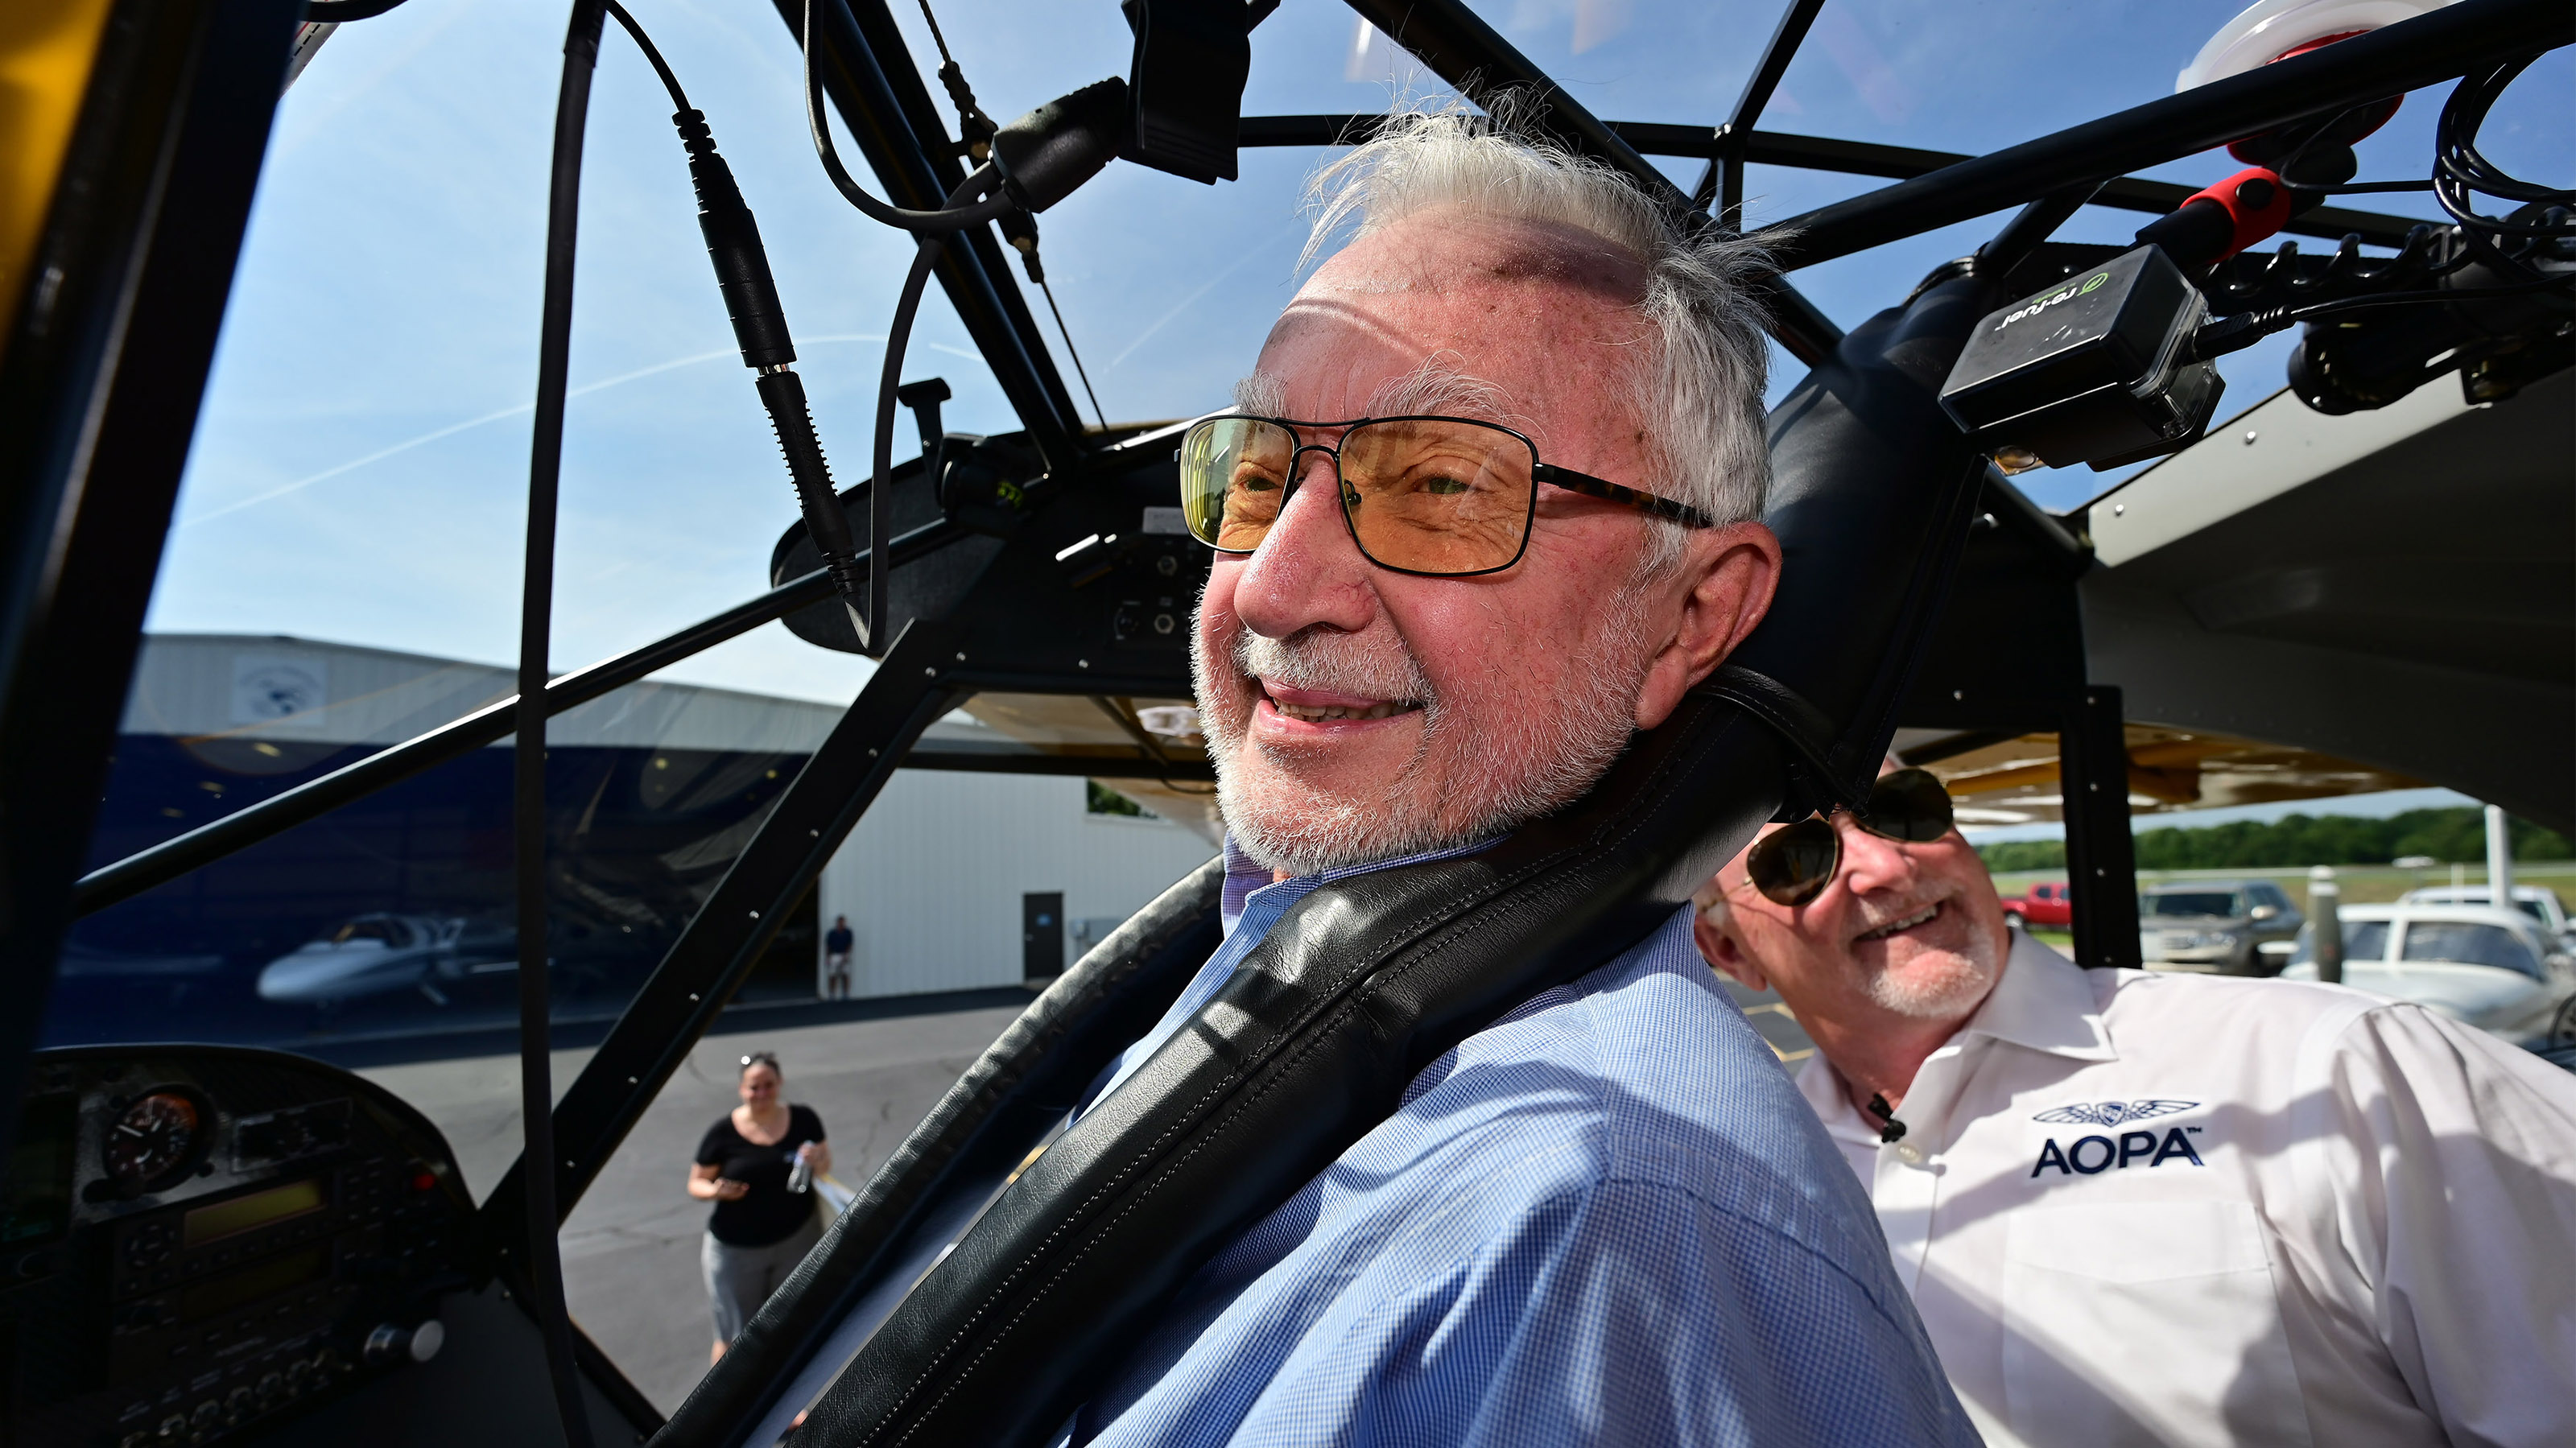 Eighty-year-old student pilot and AOPA Sweepstakes Super Cub winner Wade Shealy smiles as he straps in with AOPA President Mark Baker for a familiarization flight to Lake Keowee, South Carolina, July 15. Photo by David Tulis.